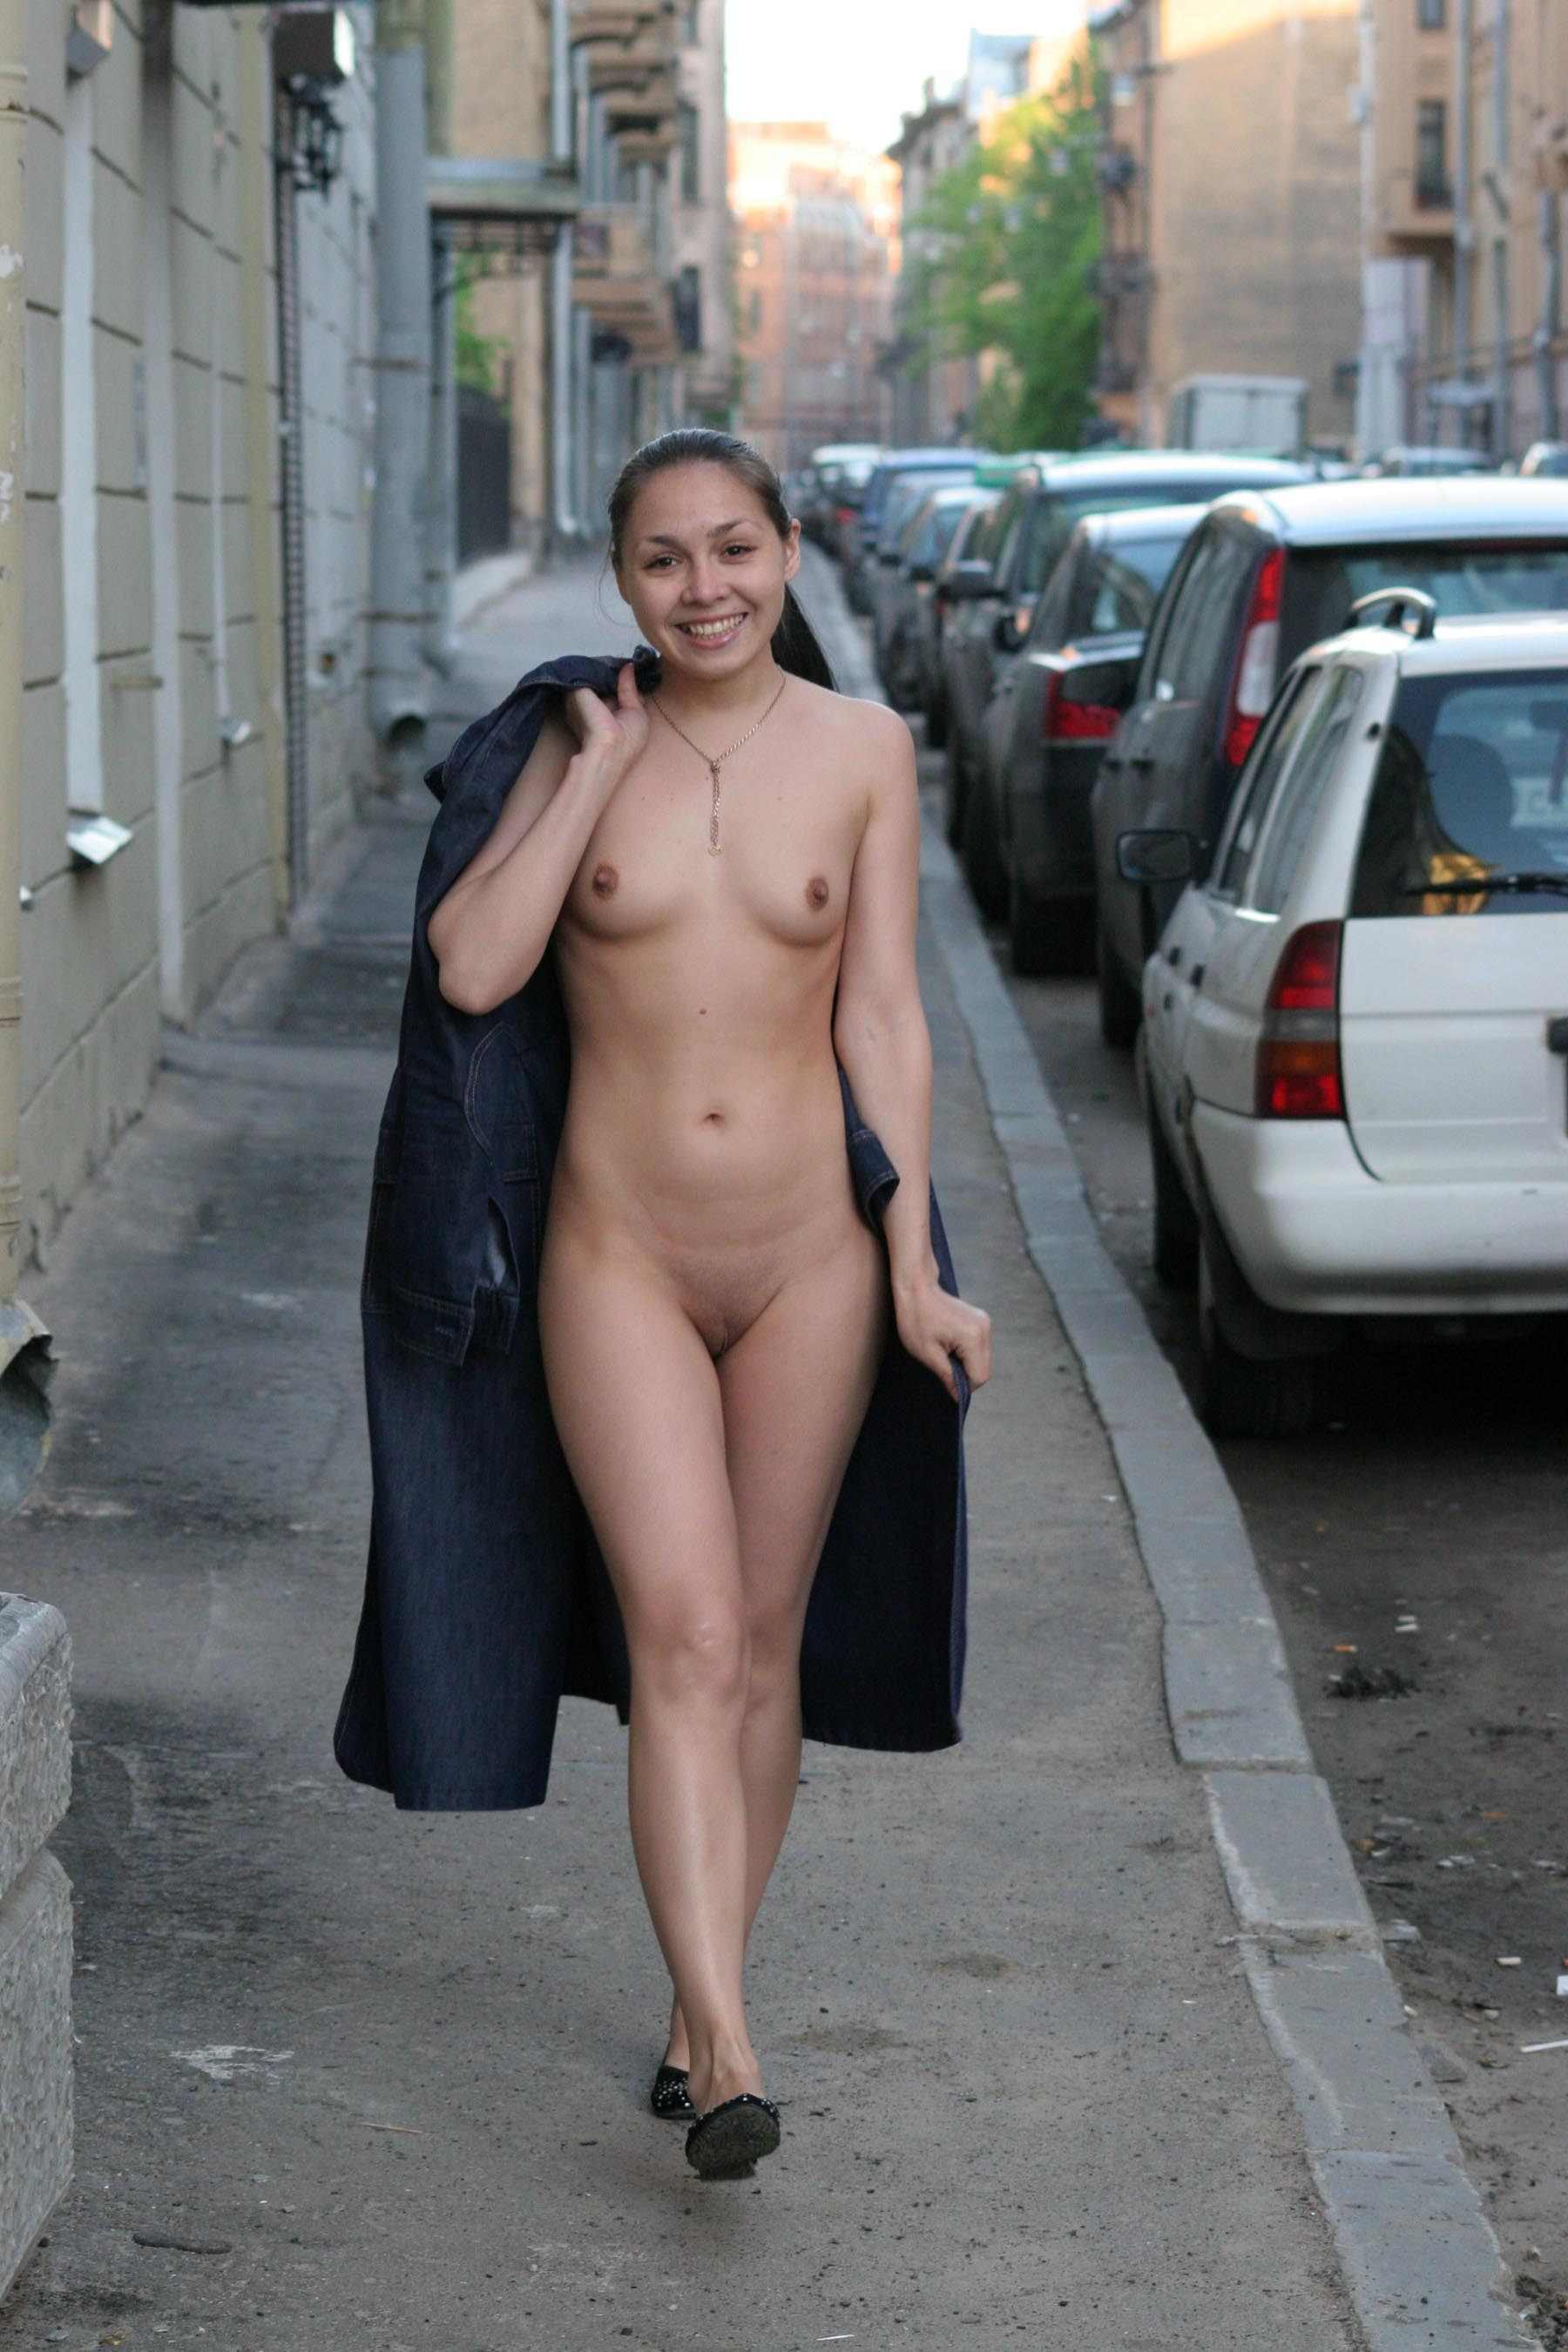 Nude in the city phrase simply